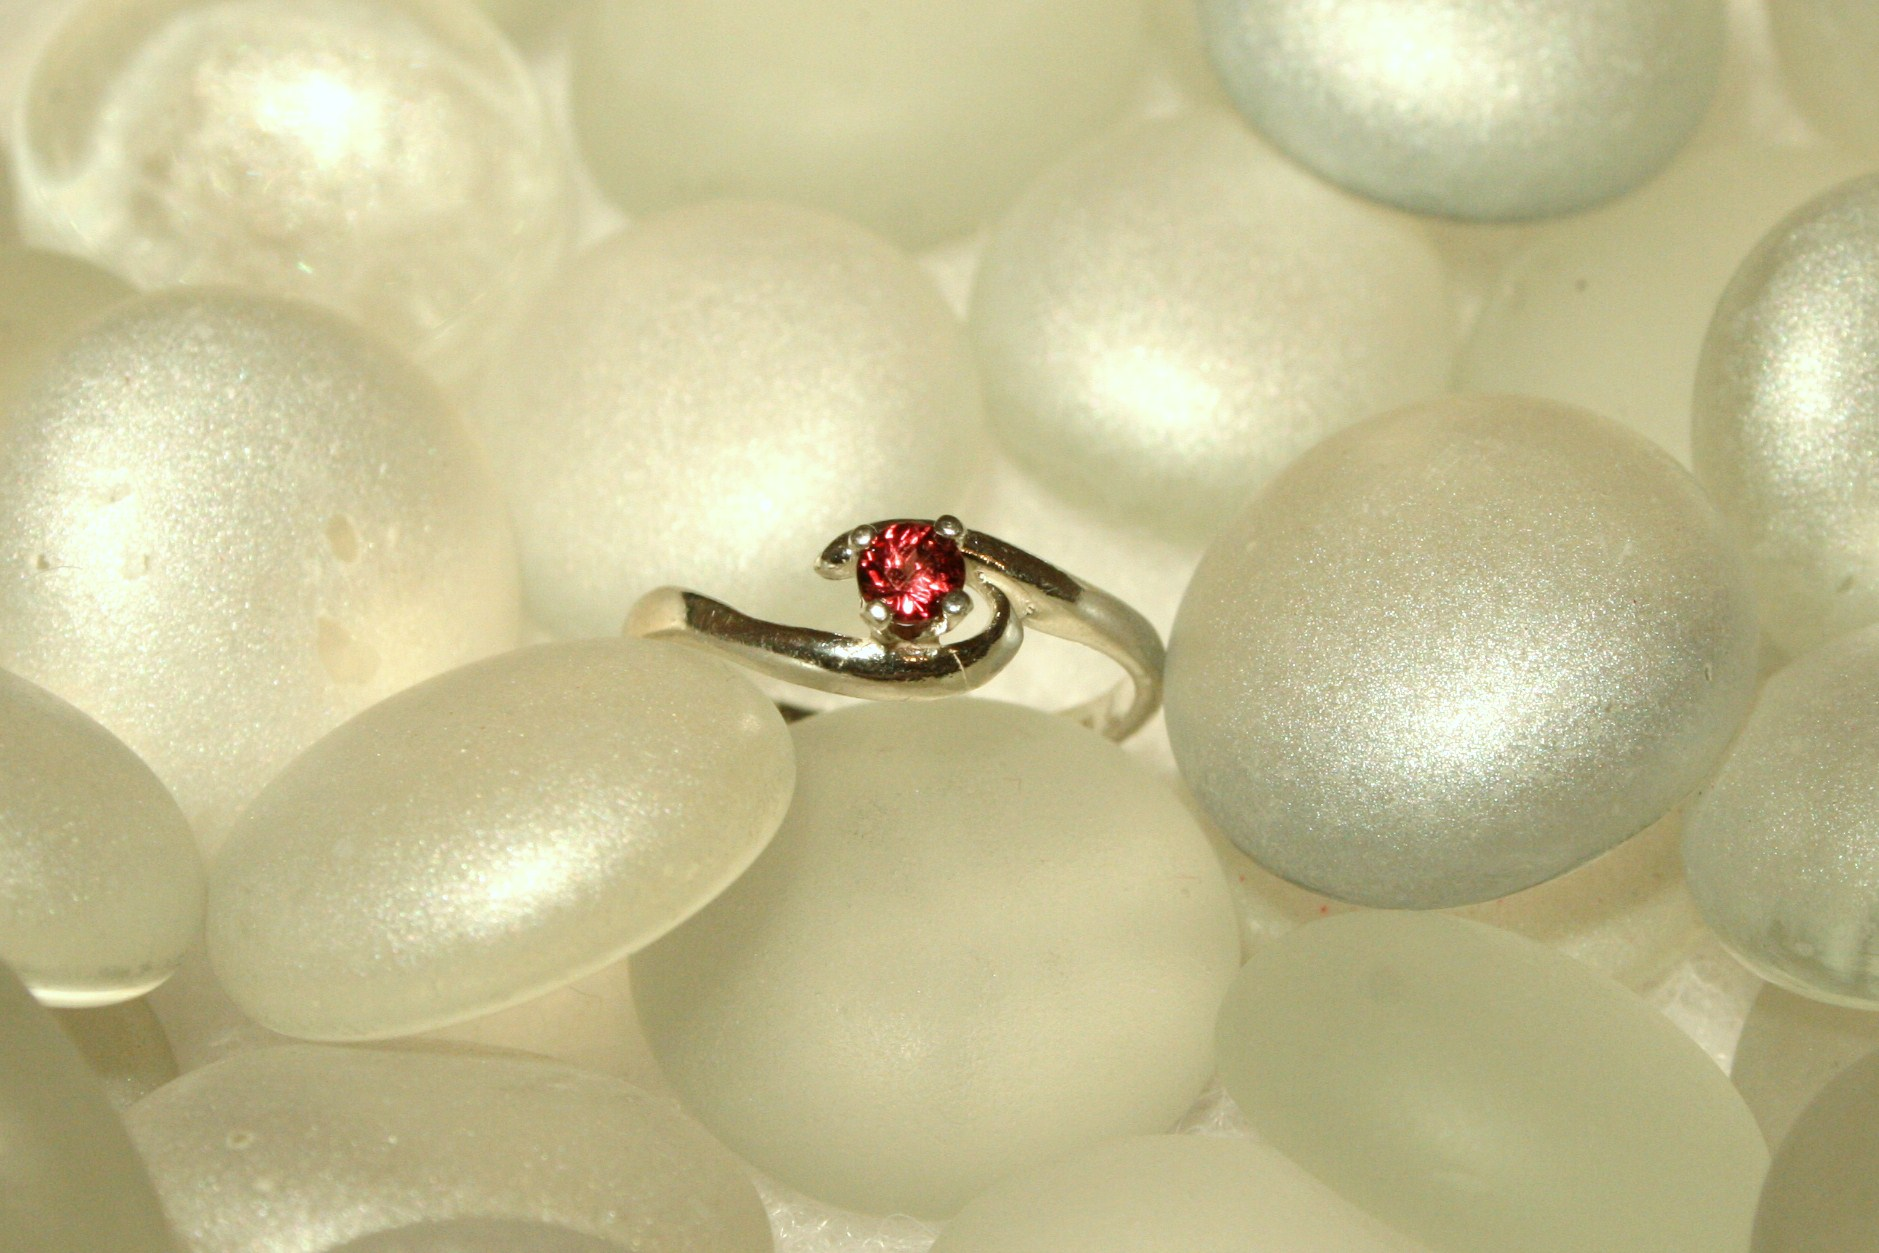 A dainty sterling silver ring set with a beautiful Idaho garnet, The simple band features a slight curve around the garnet. Perfect for any woman and a great choice as a youth ring. Made in Philipsburg, Montana.